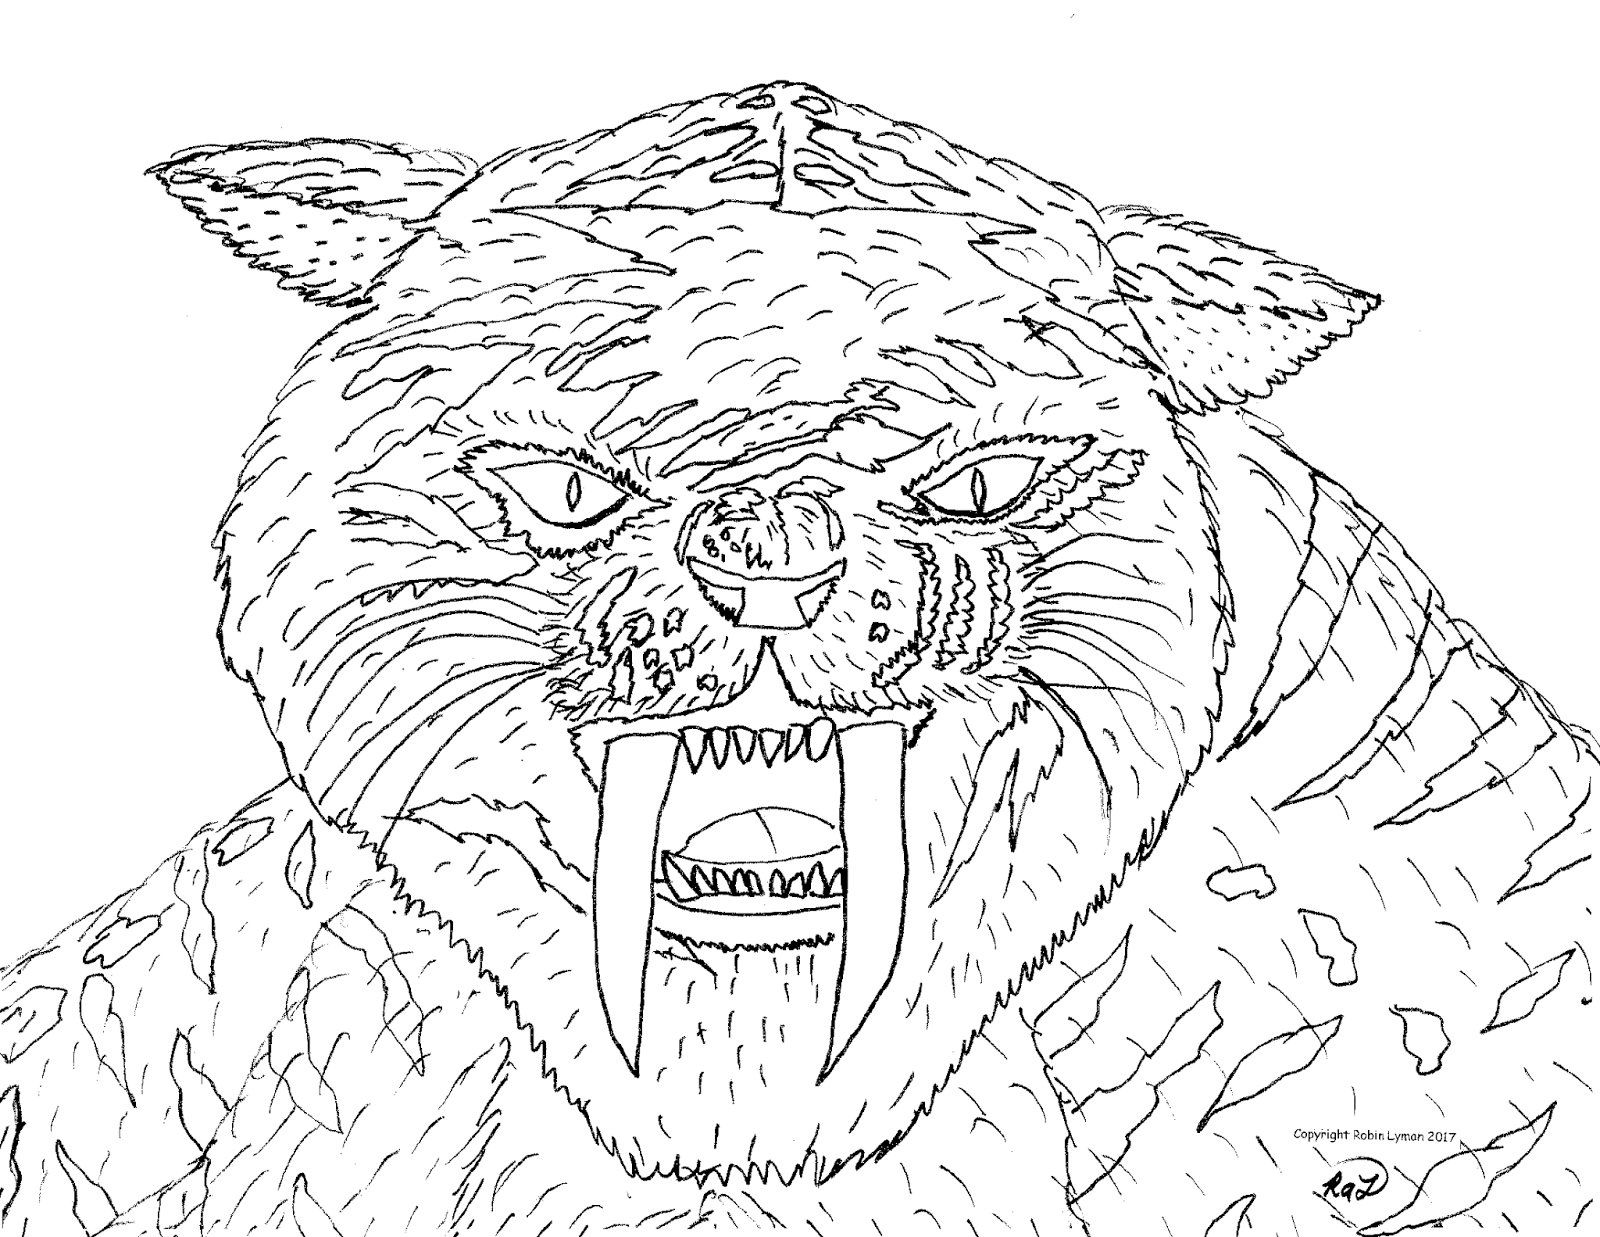 Robin's Great Coloring Pages: Smilodon Saber Tooth Cats